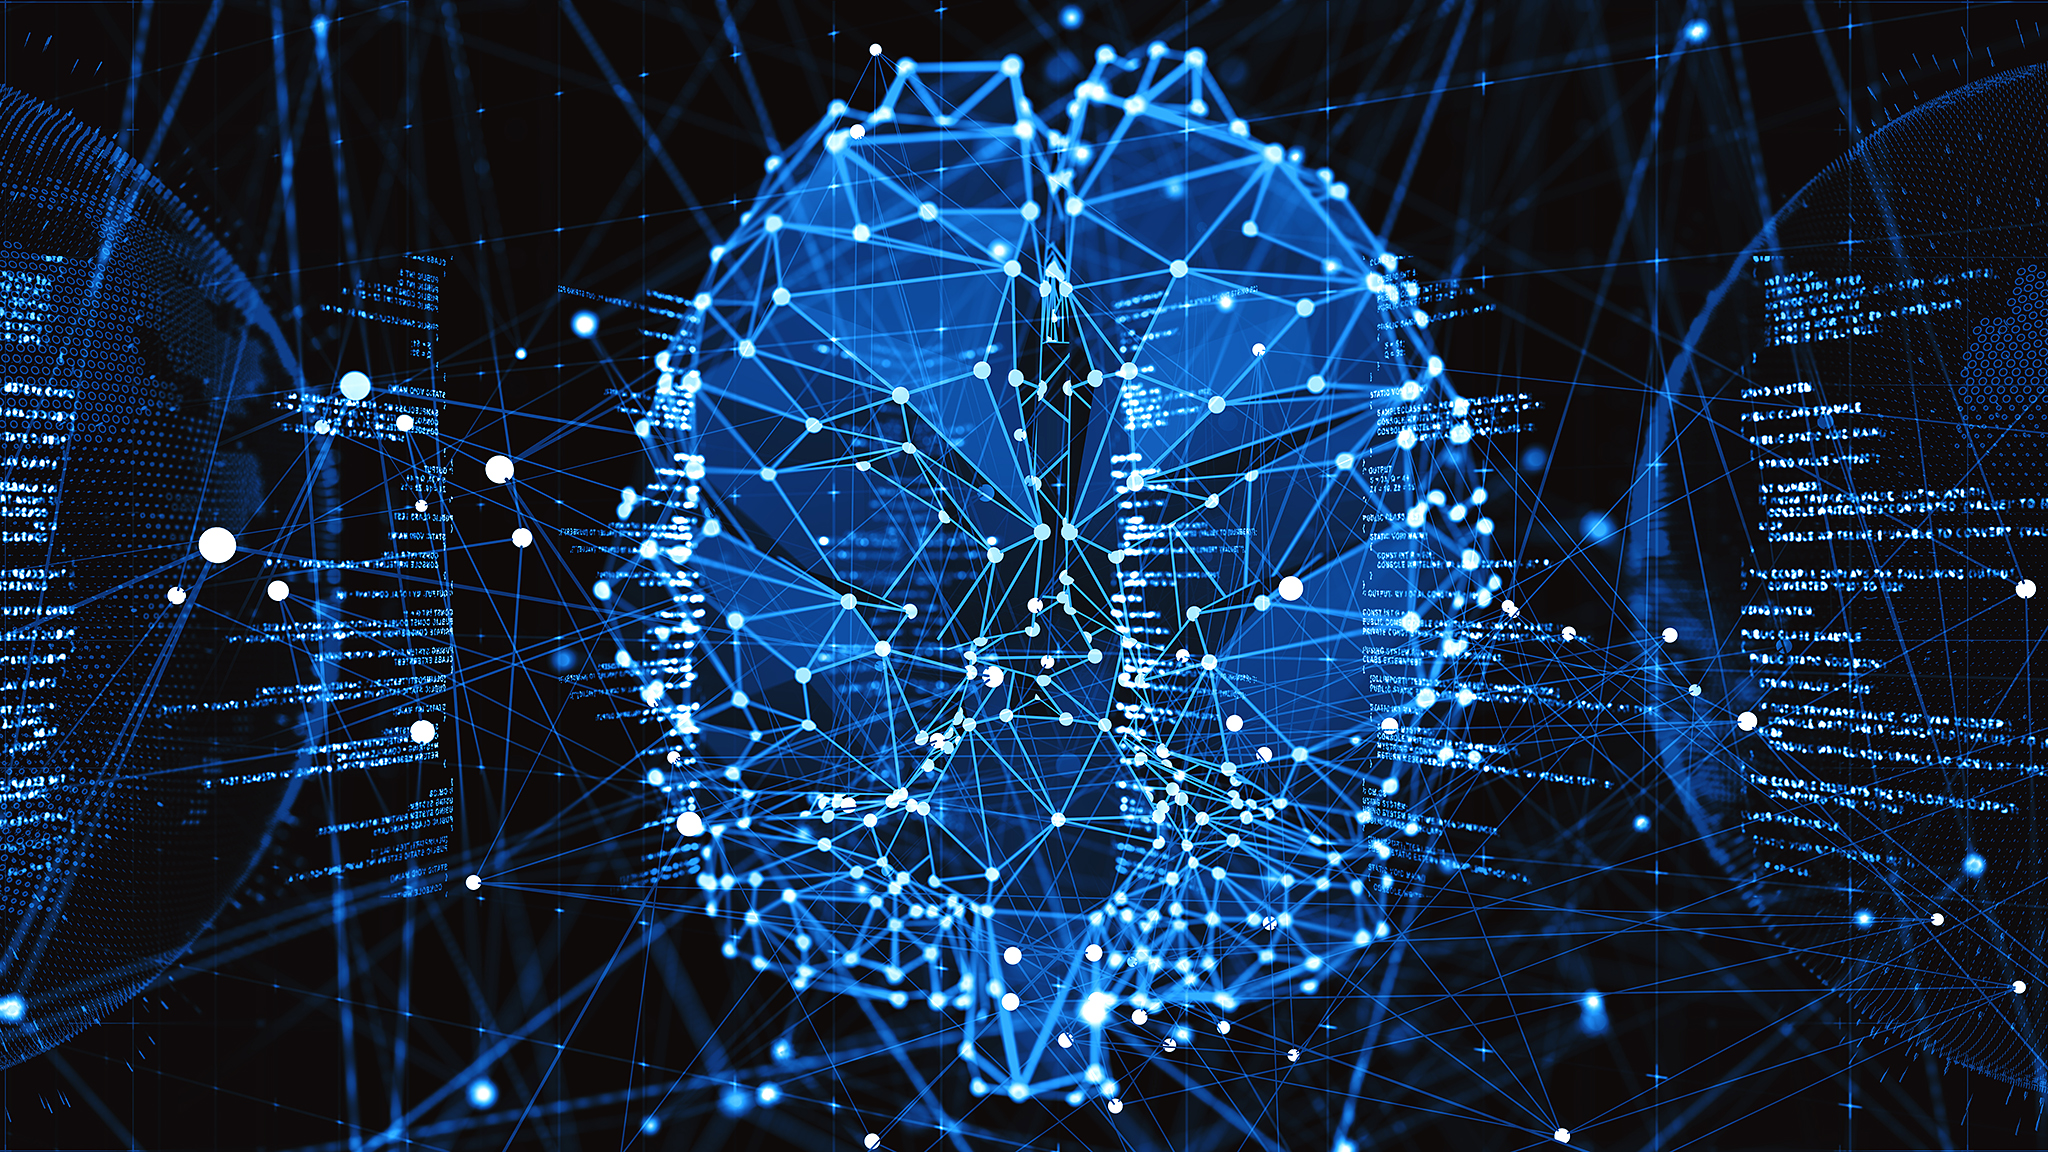 'Deep learning' — the hot topic in AI